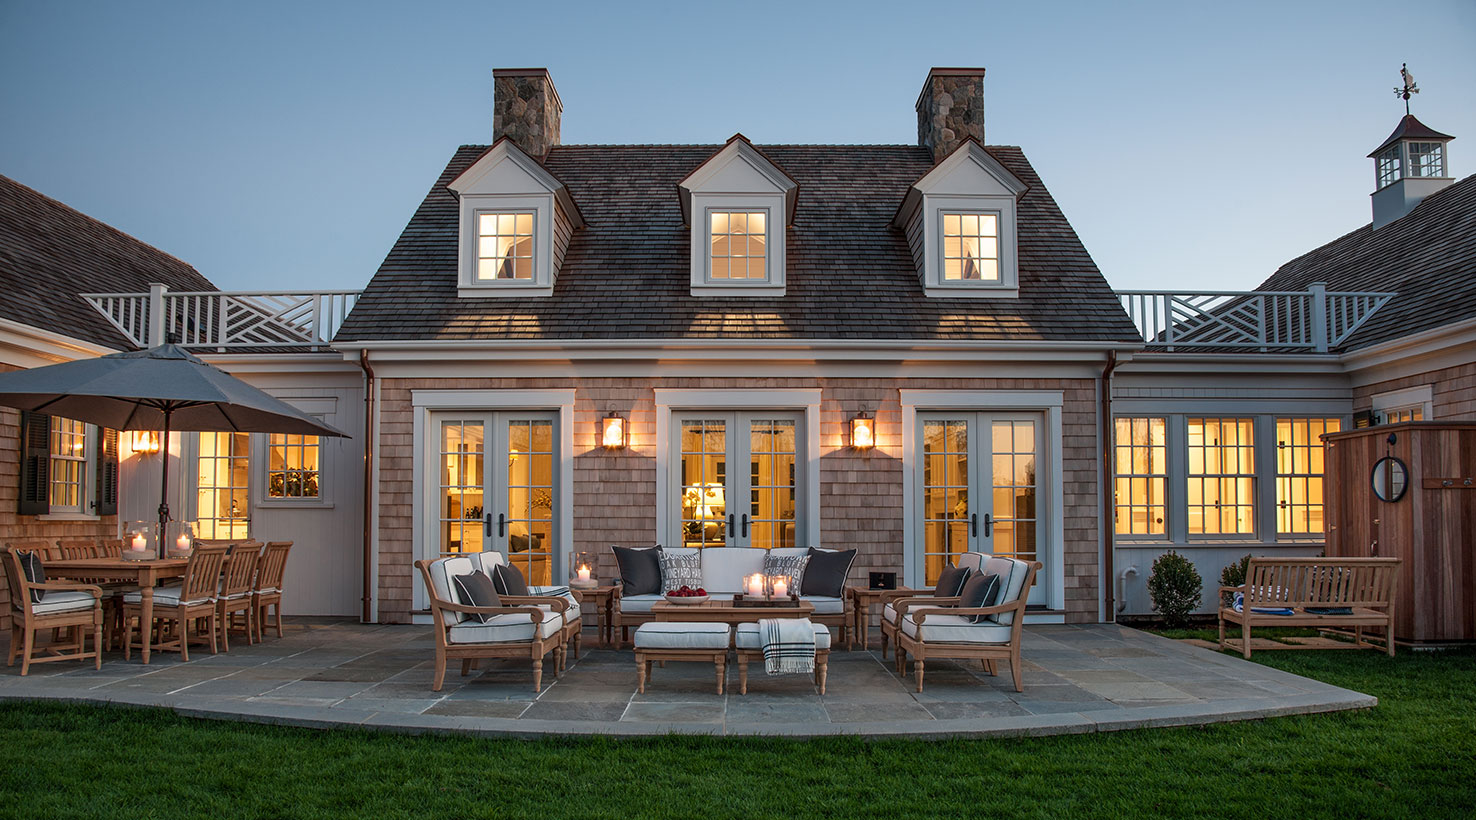 Hgtv dream home 2015 the look of hgtv sponsored by for Drem homes